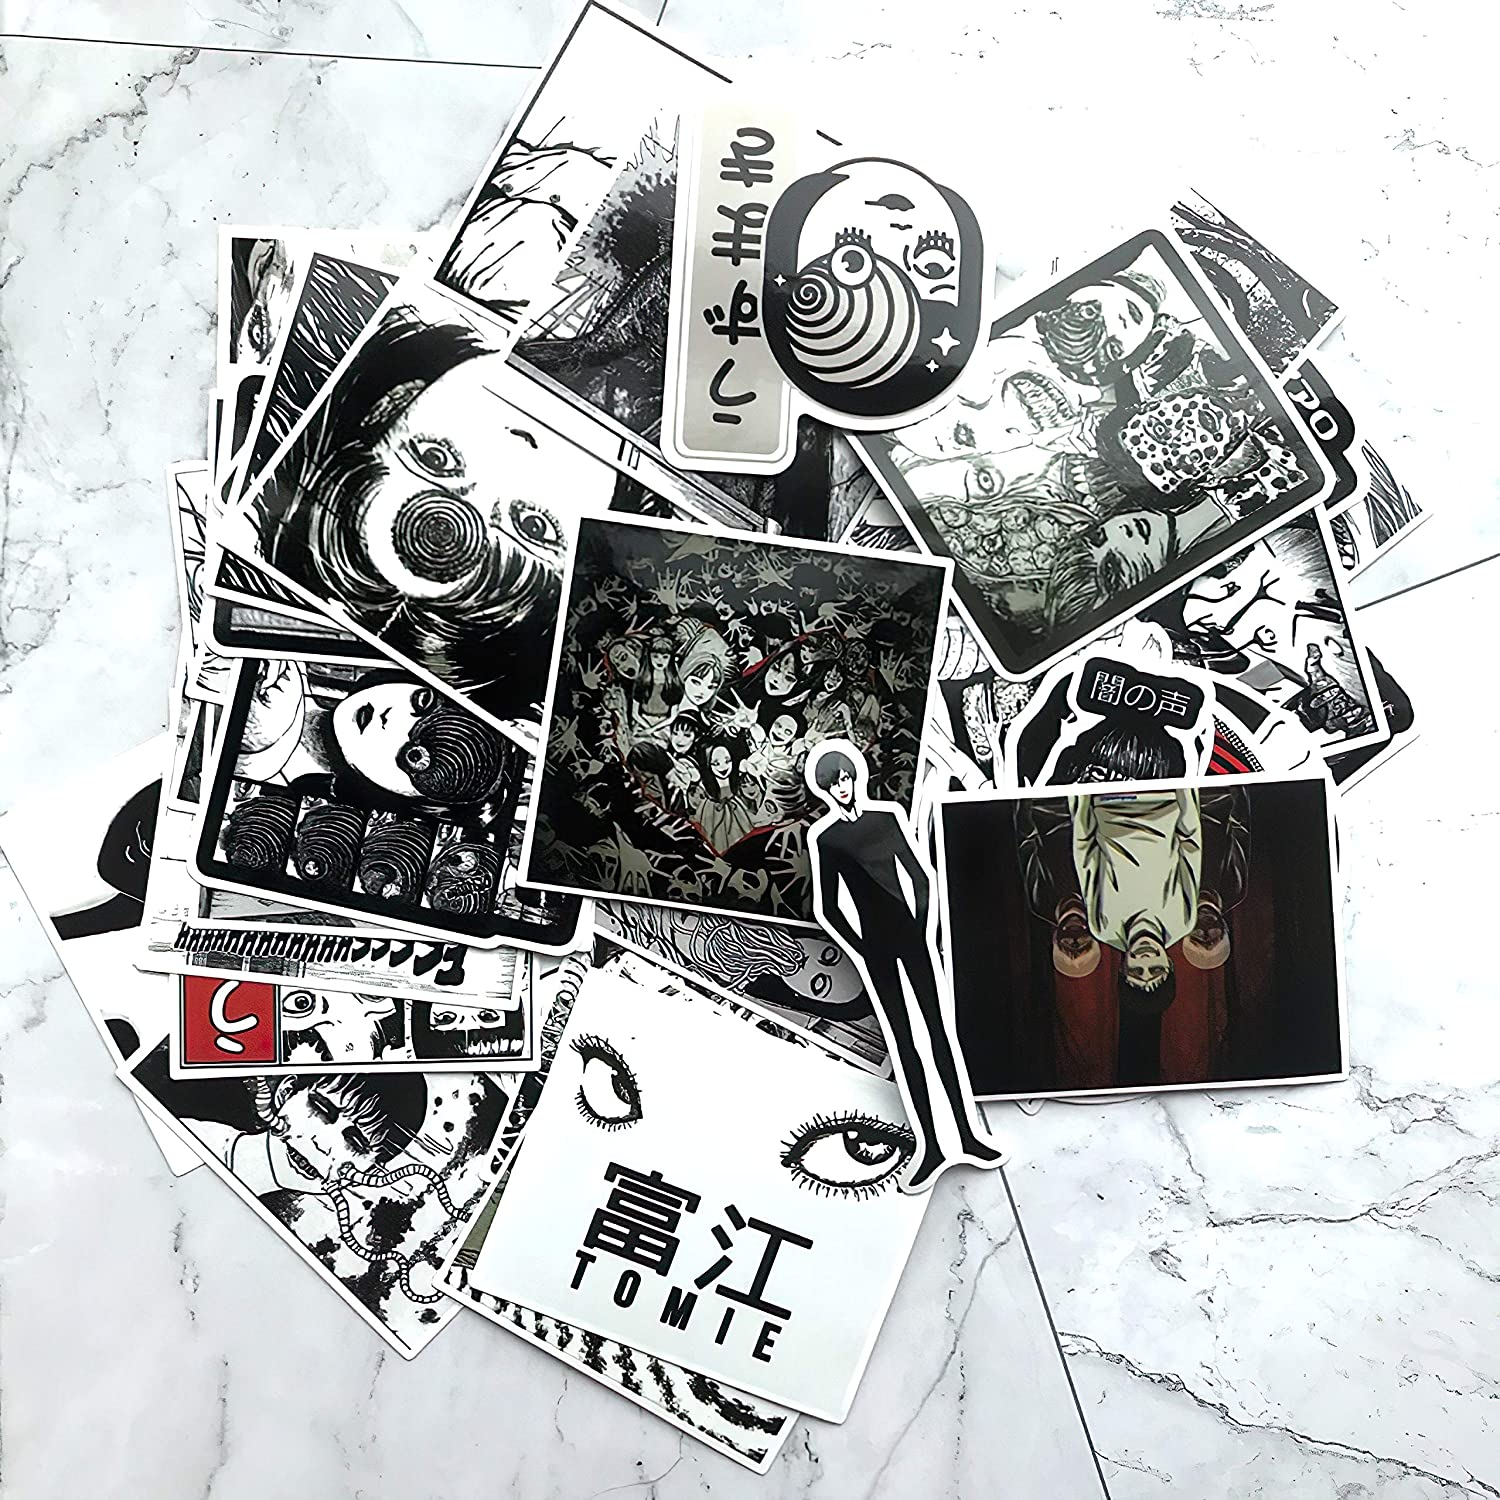 56Pcs Horror Comics Stickers Japanese ITO leap Second Decal for Snowboard Laptop Luggage Car Fridge Car-Styling Vinyl Home